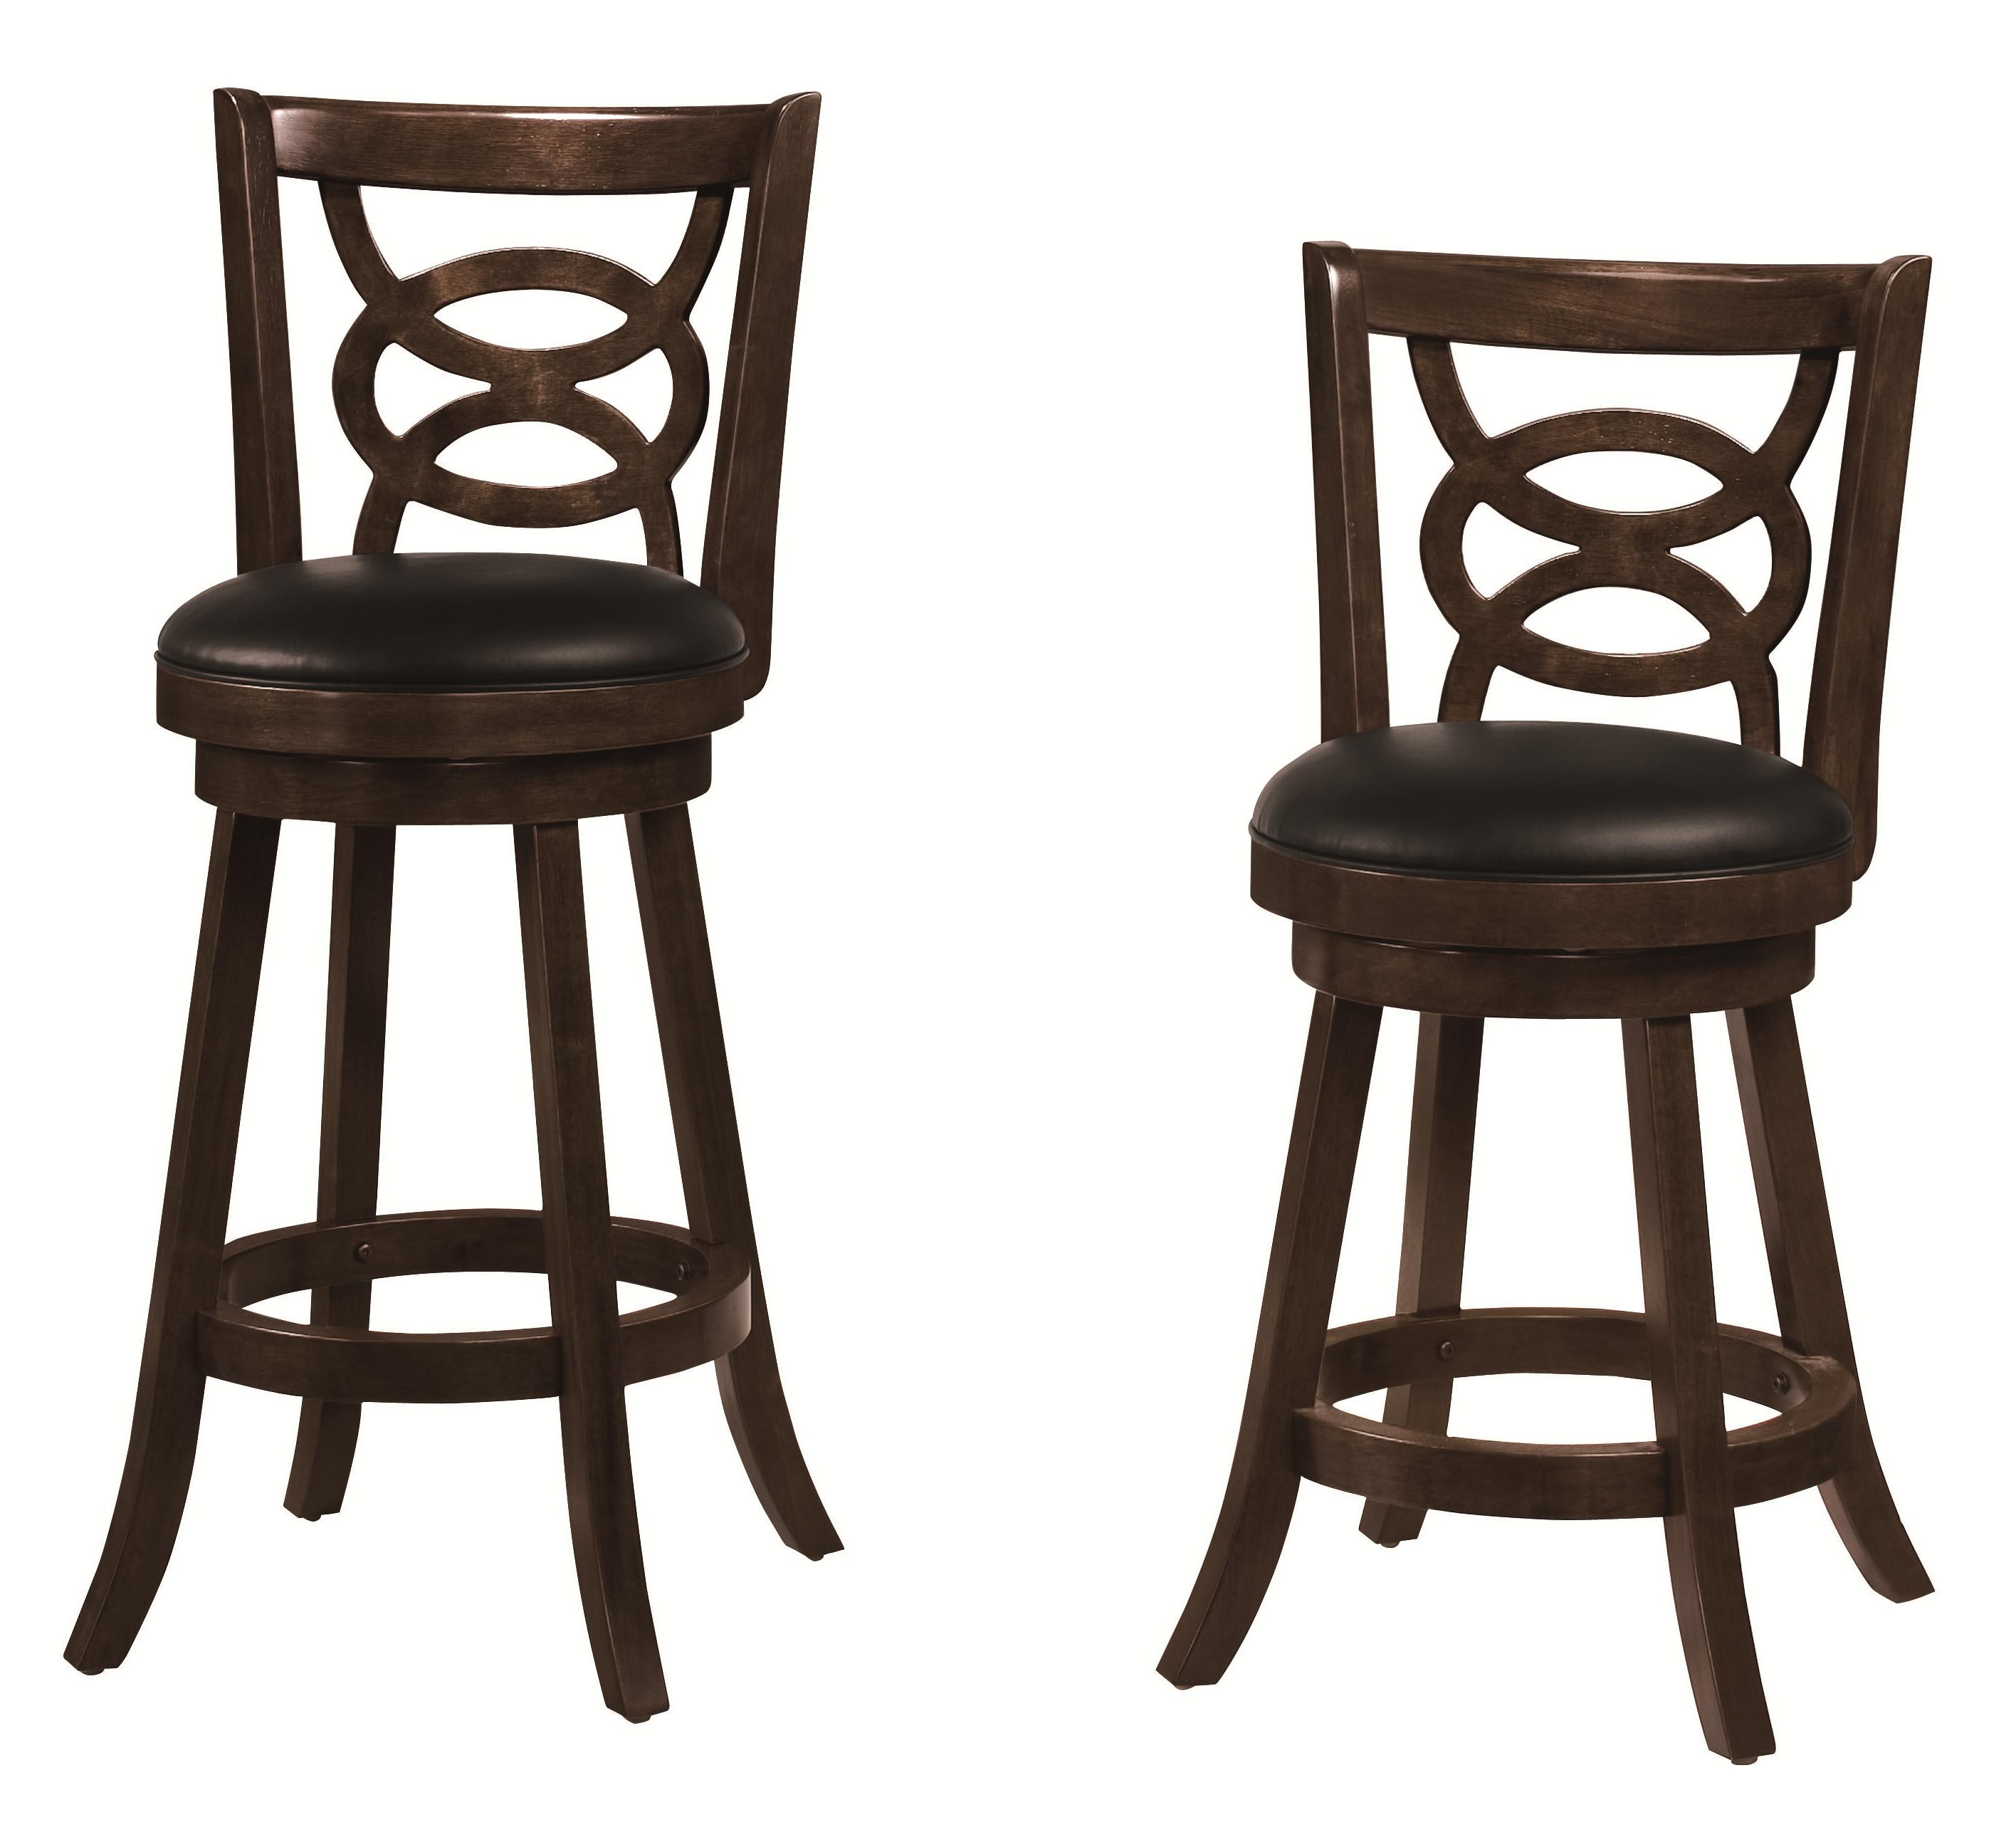 Coaster Dining Chairs And Bar Stools 101930 29 Quot Swivel Bar